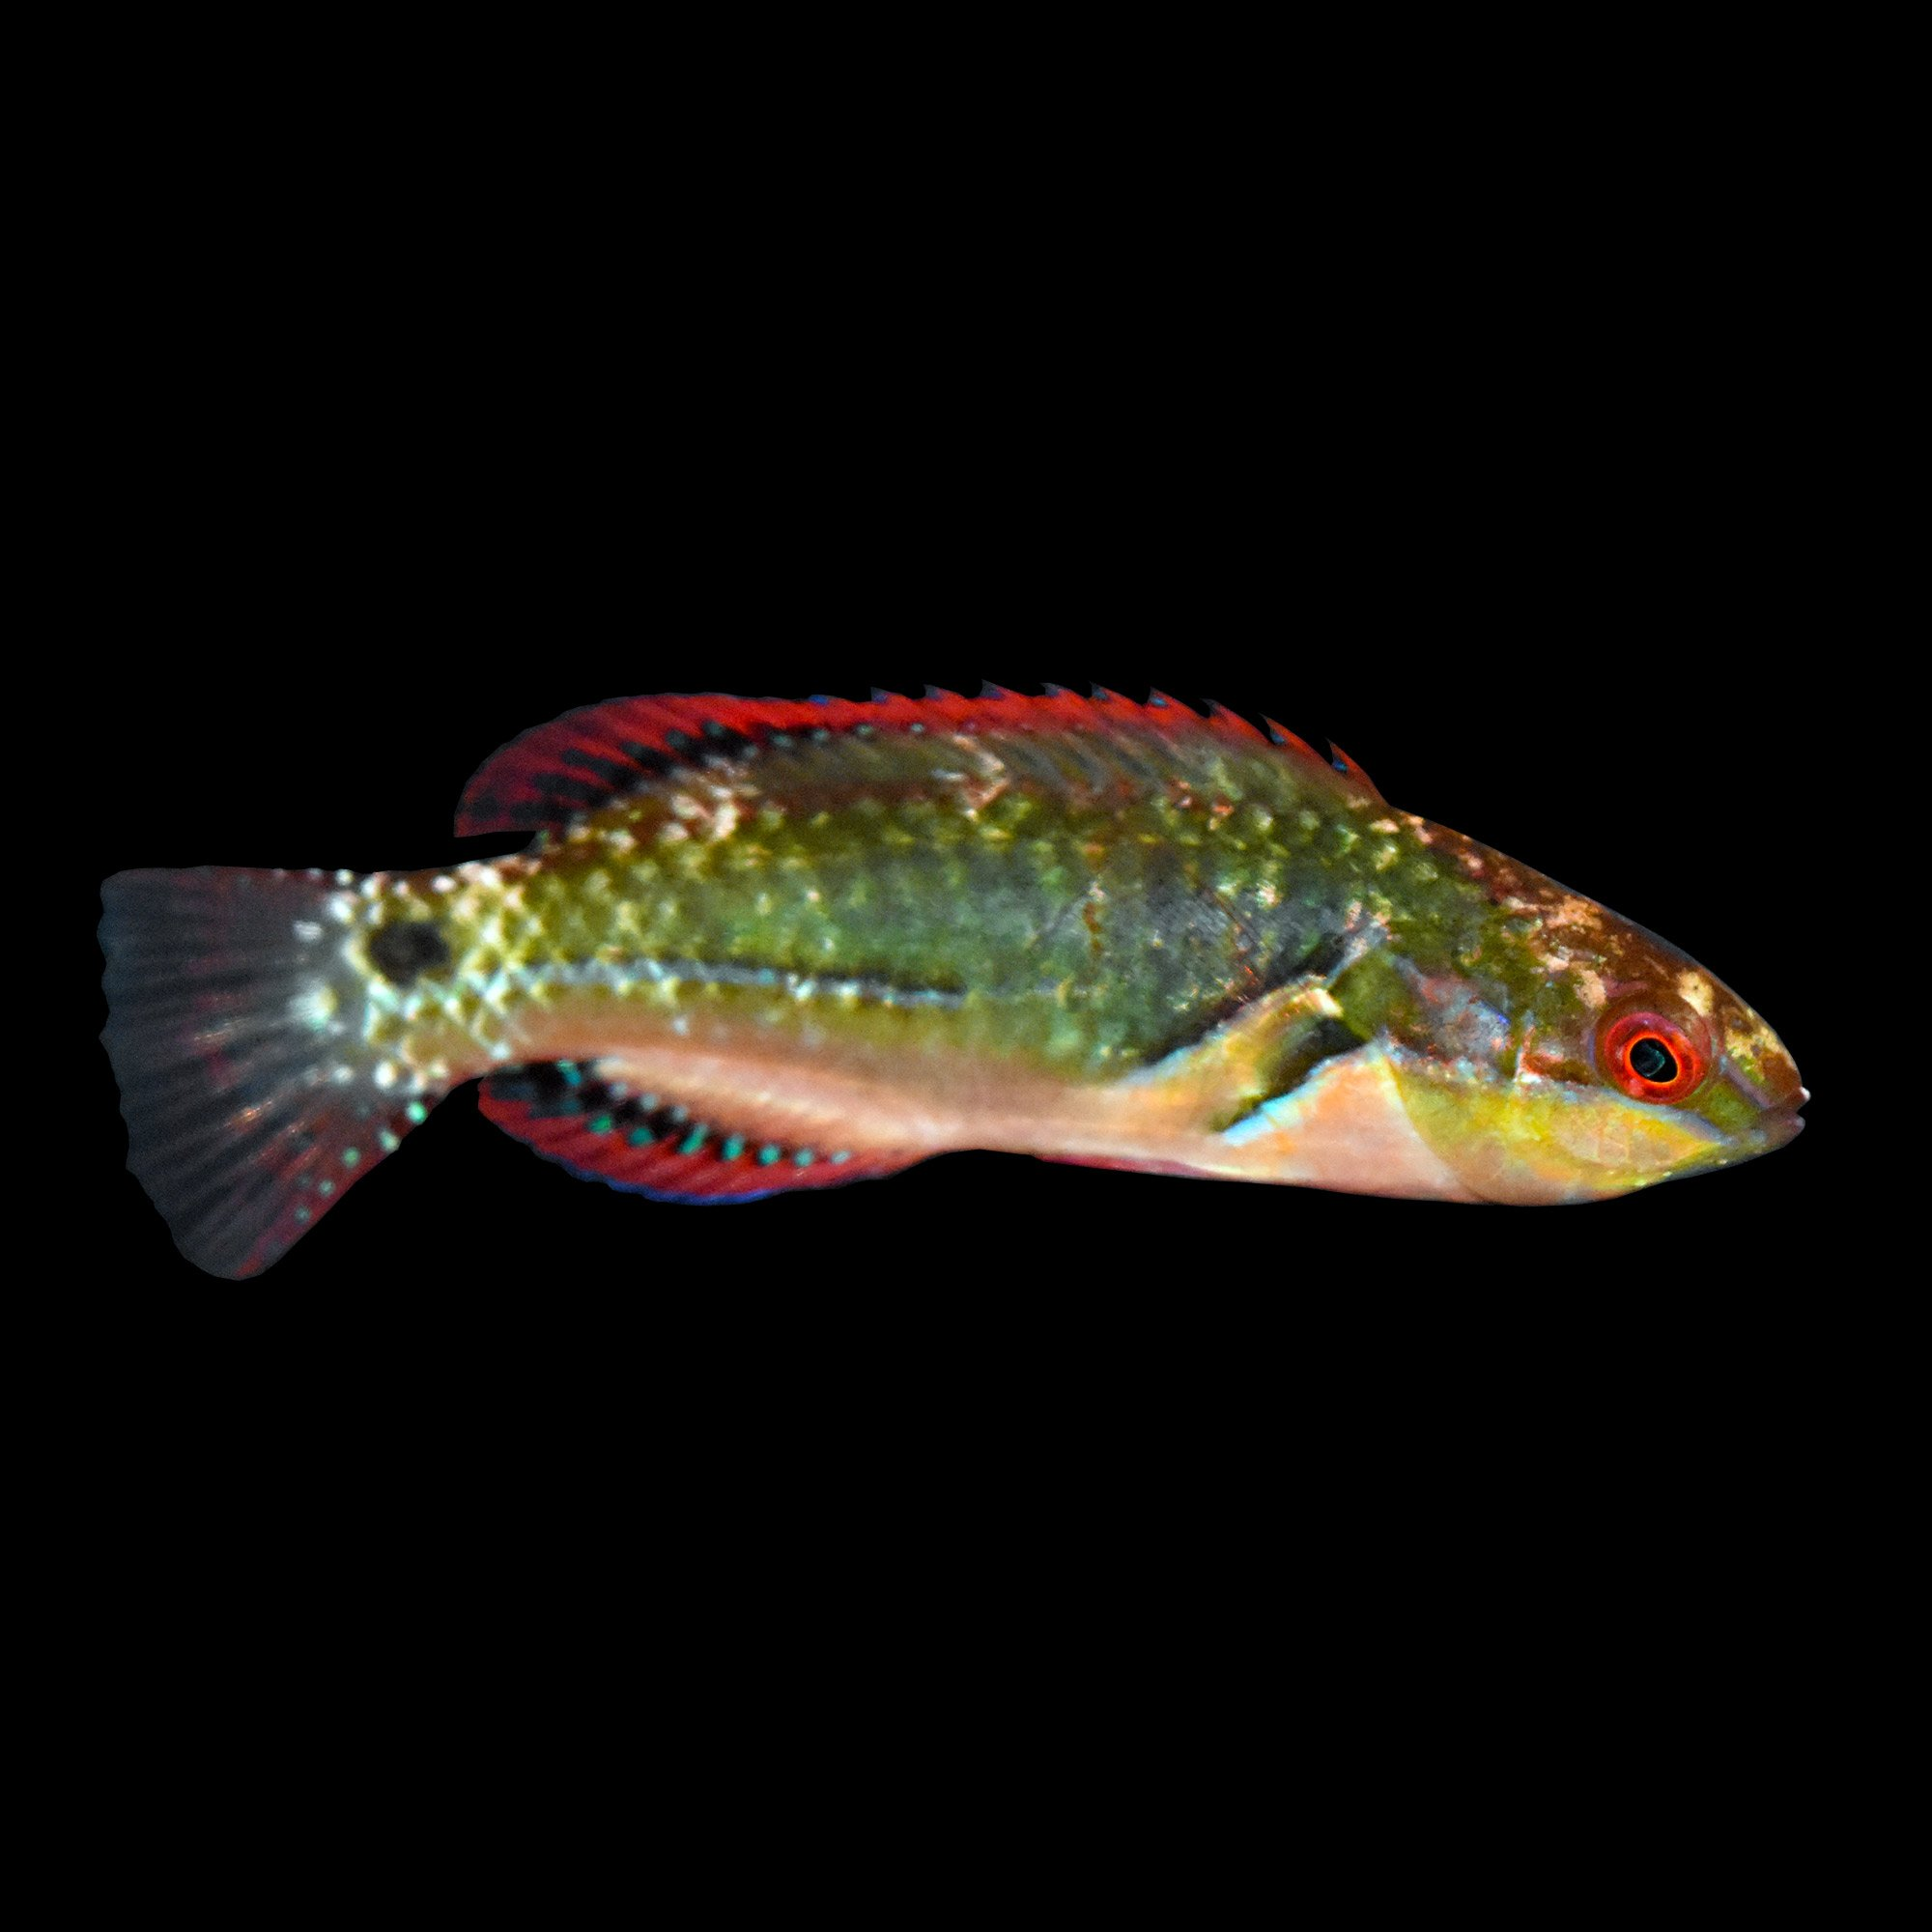 Exquisite wrasse petco for Petco live fish